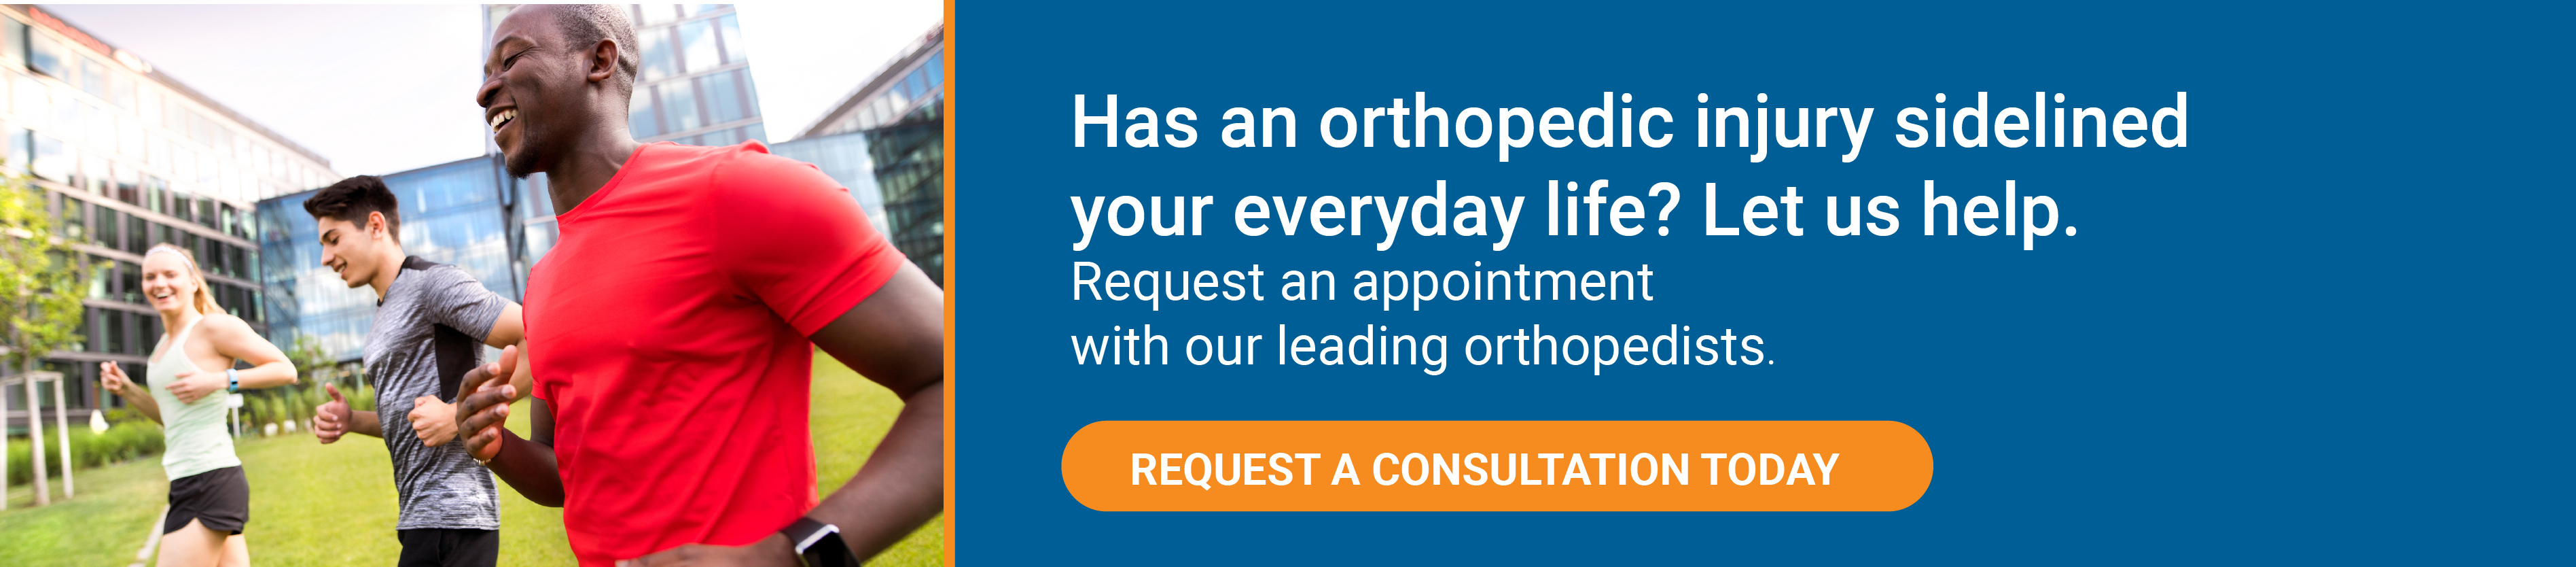 DISC Specializes in Orthopedic Injuries